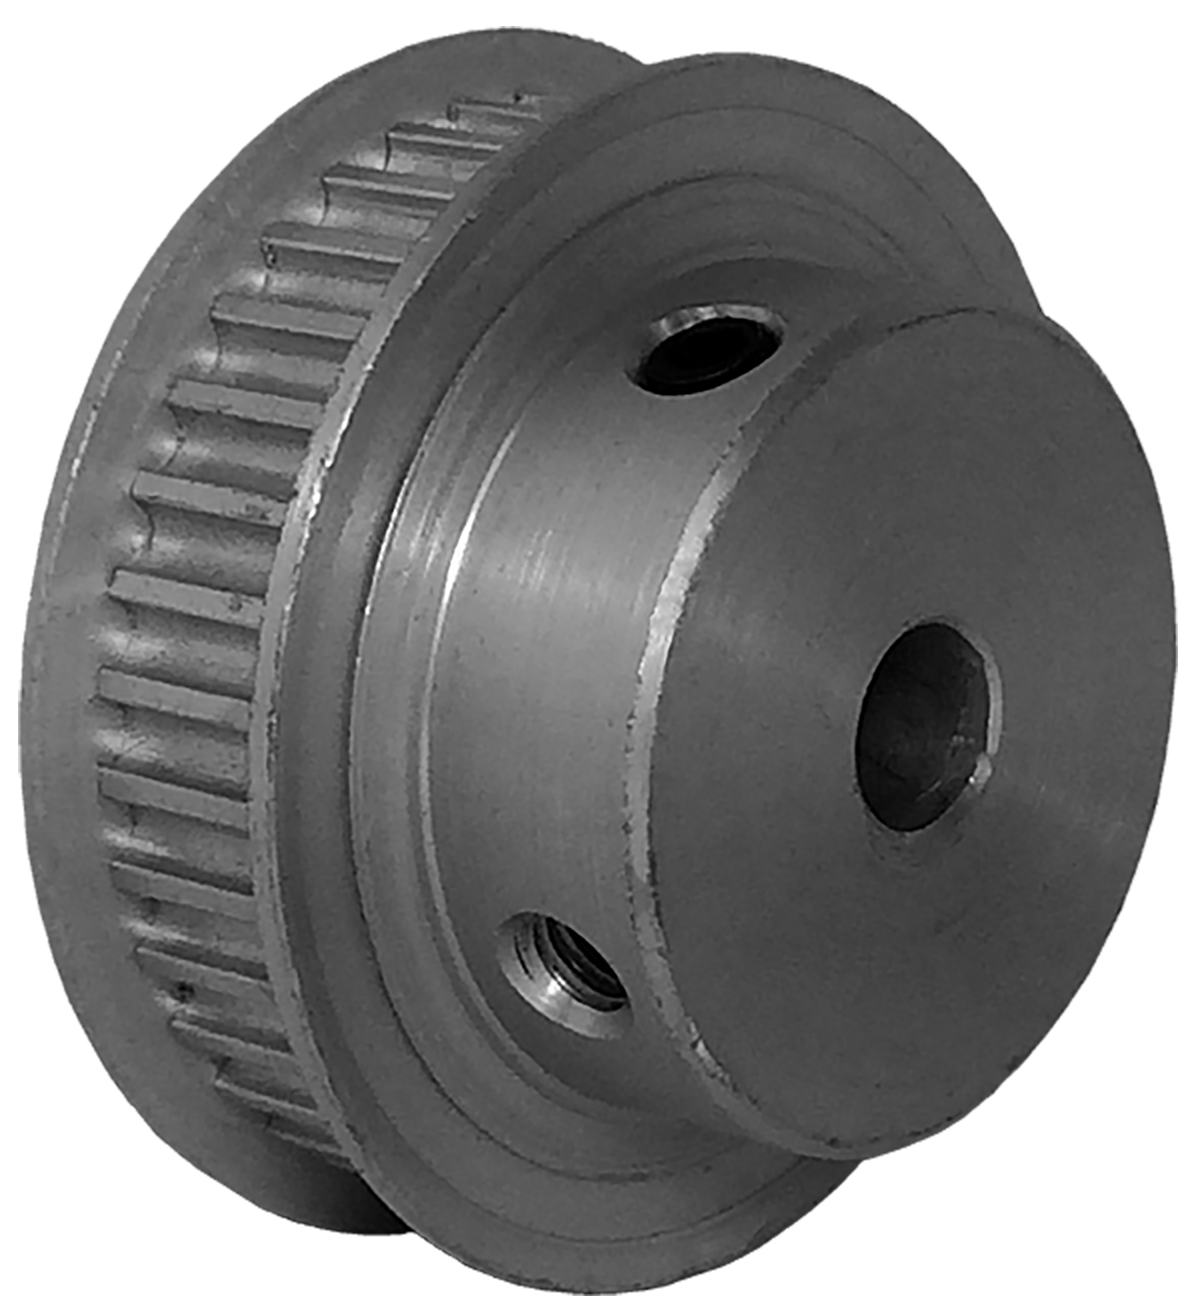 36-3M06M6FA6 - Aluminum Powerhouse®HTD® Pulleys